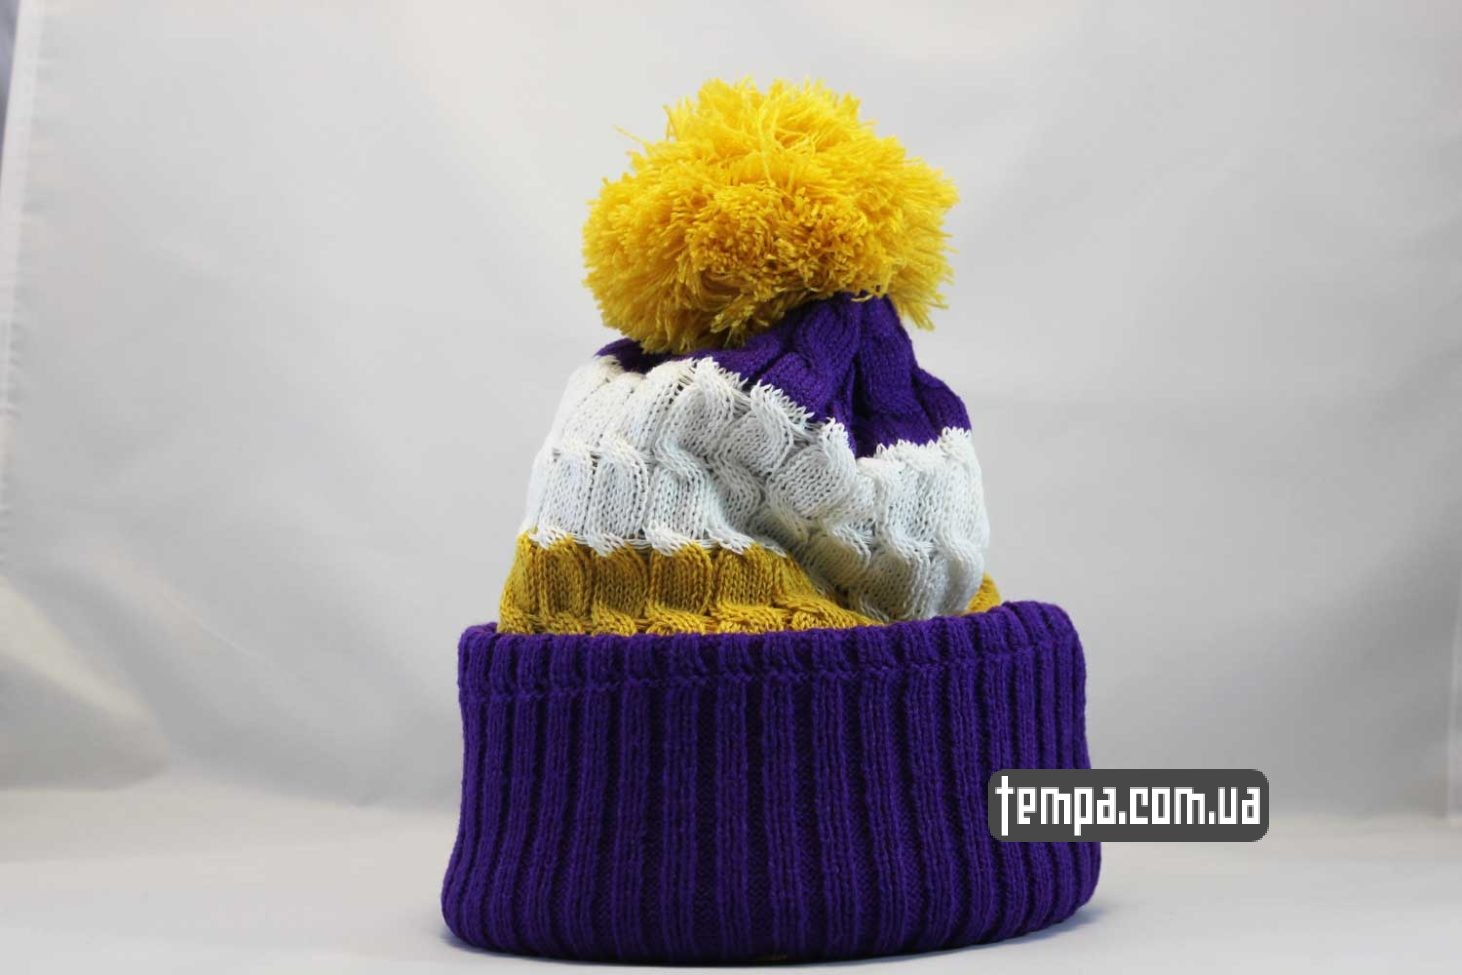 лейкерс лэйкерс шапка beanie LAKERS Los Angeles NBA NewEra баскетбольная